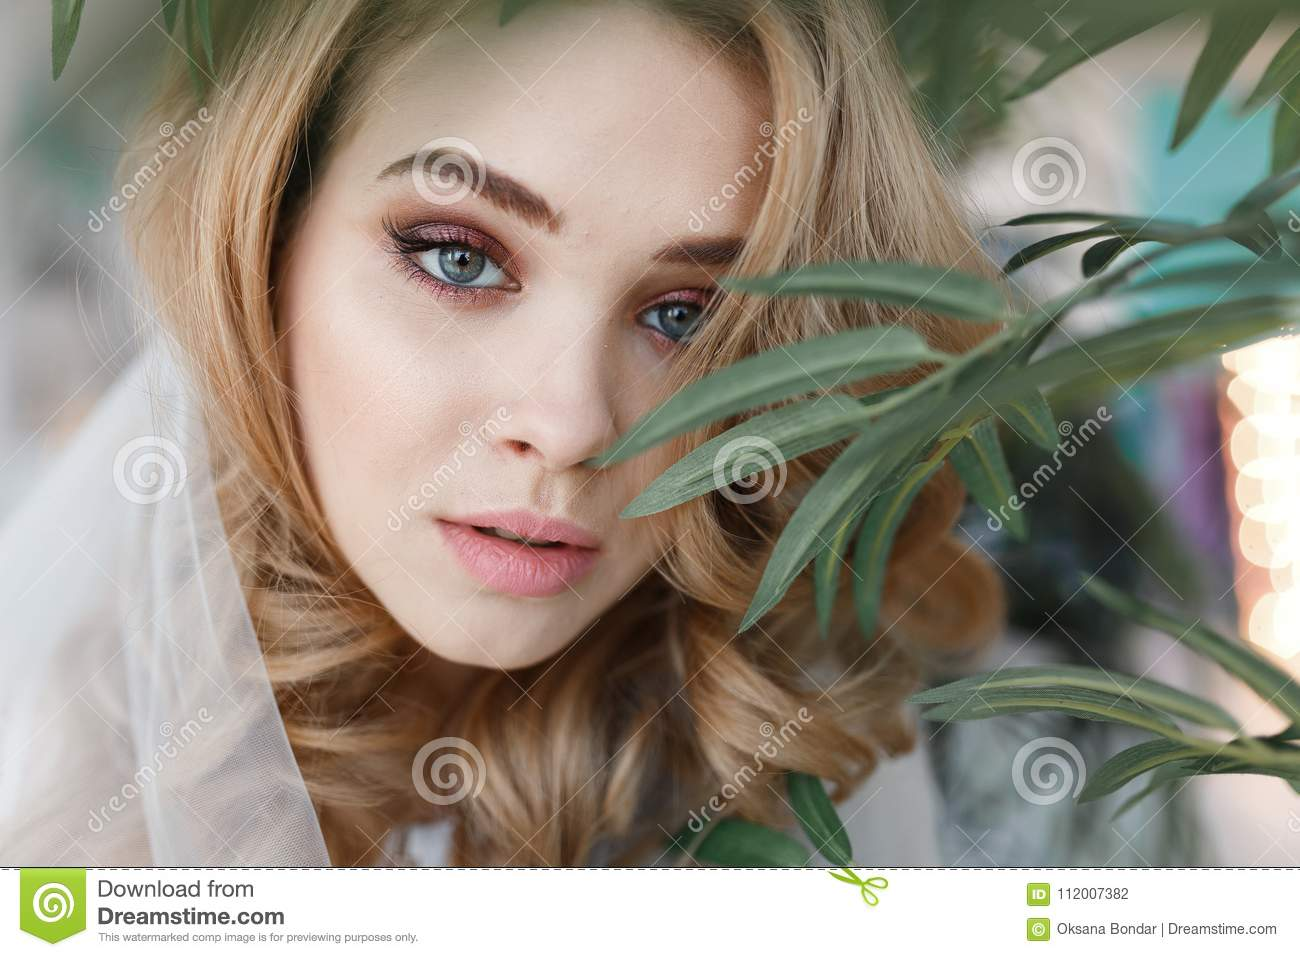 8ff725e9a619a Portrait of young attractive girl with perfect skin among green leaves.  Close-up horizontal